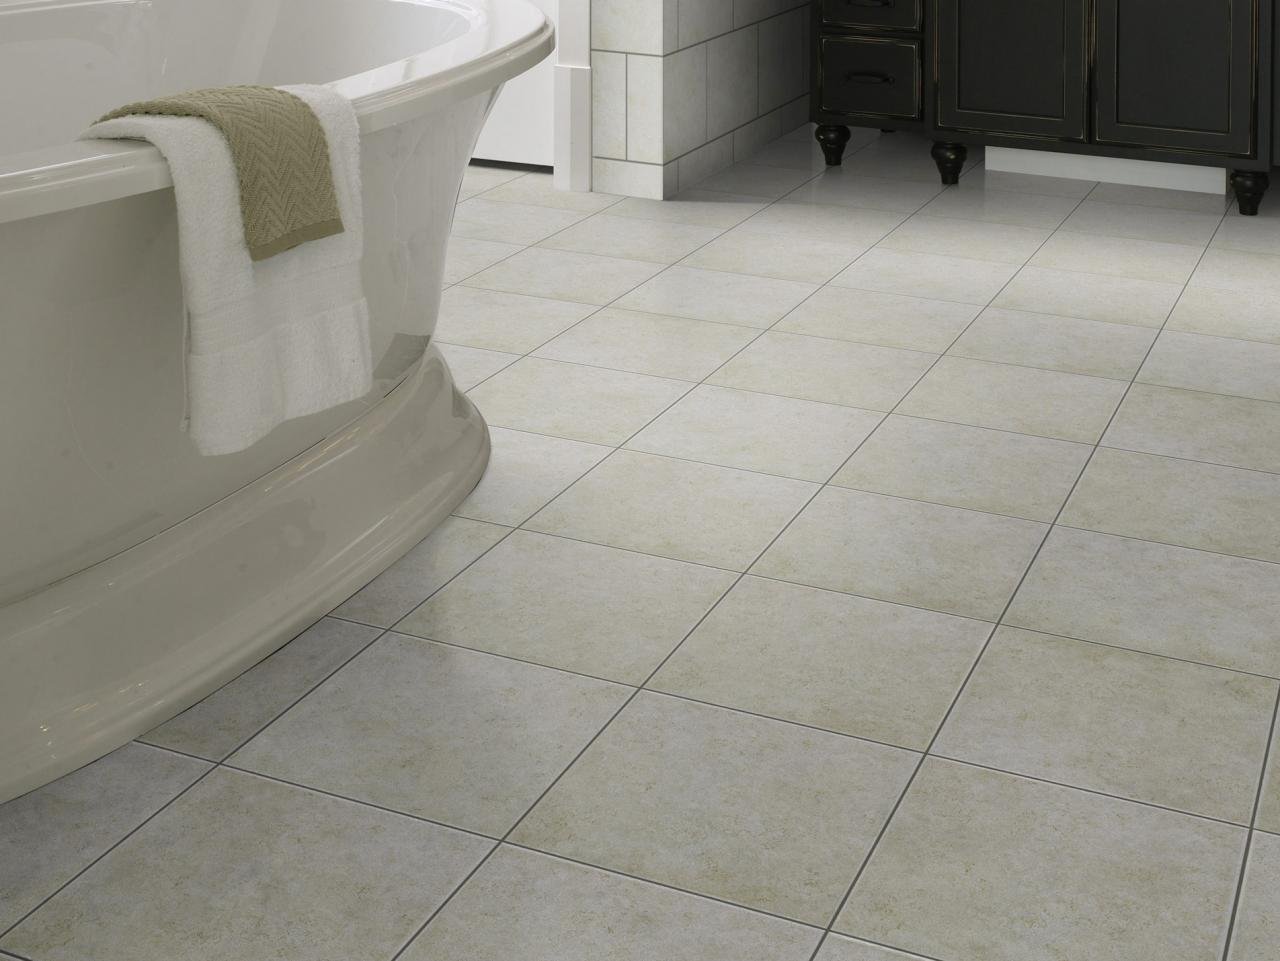 Why homeowners love ceramic tile hgtv Images of bathroom tile floors